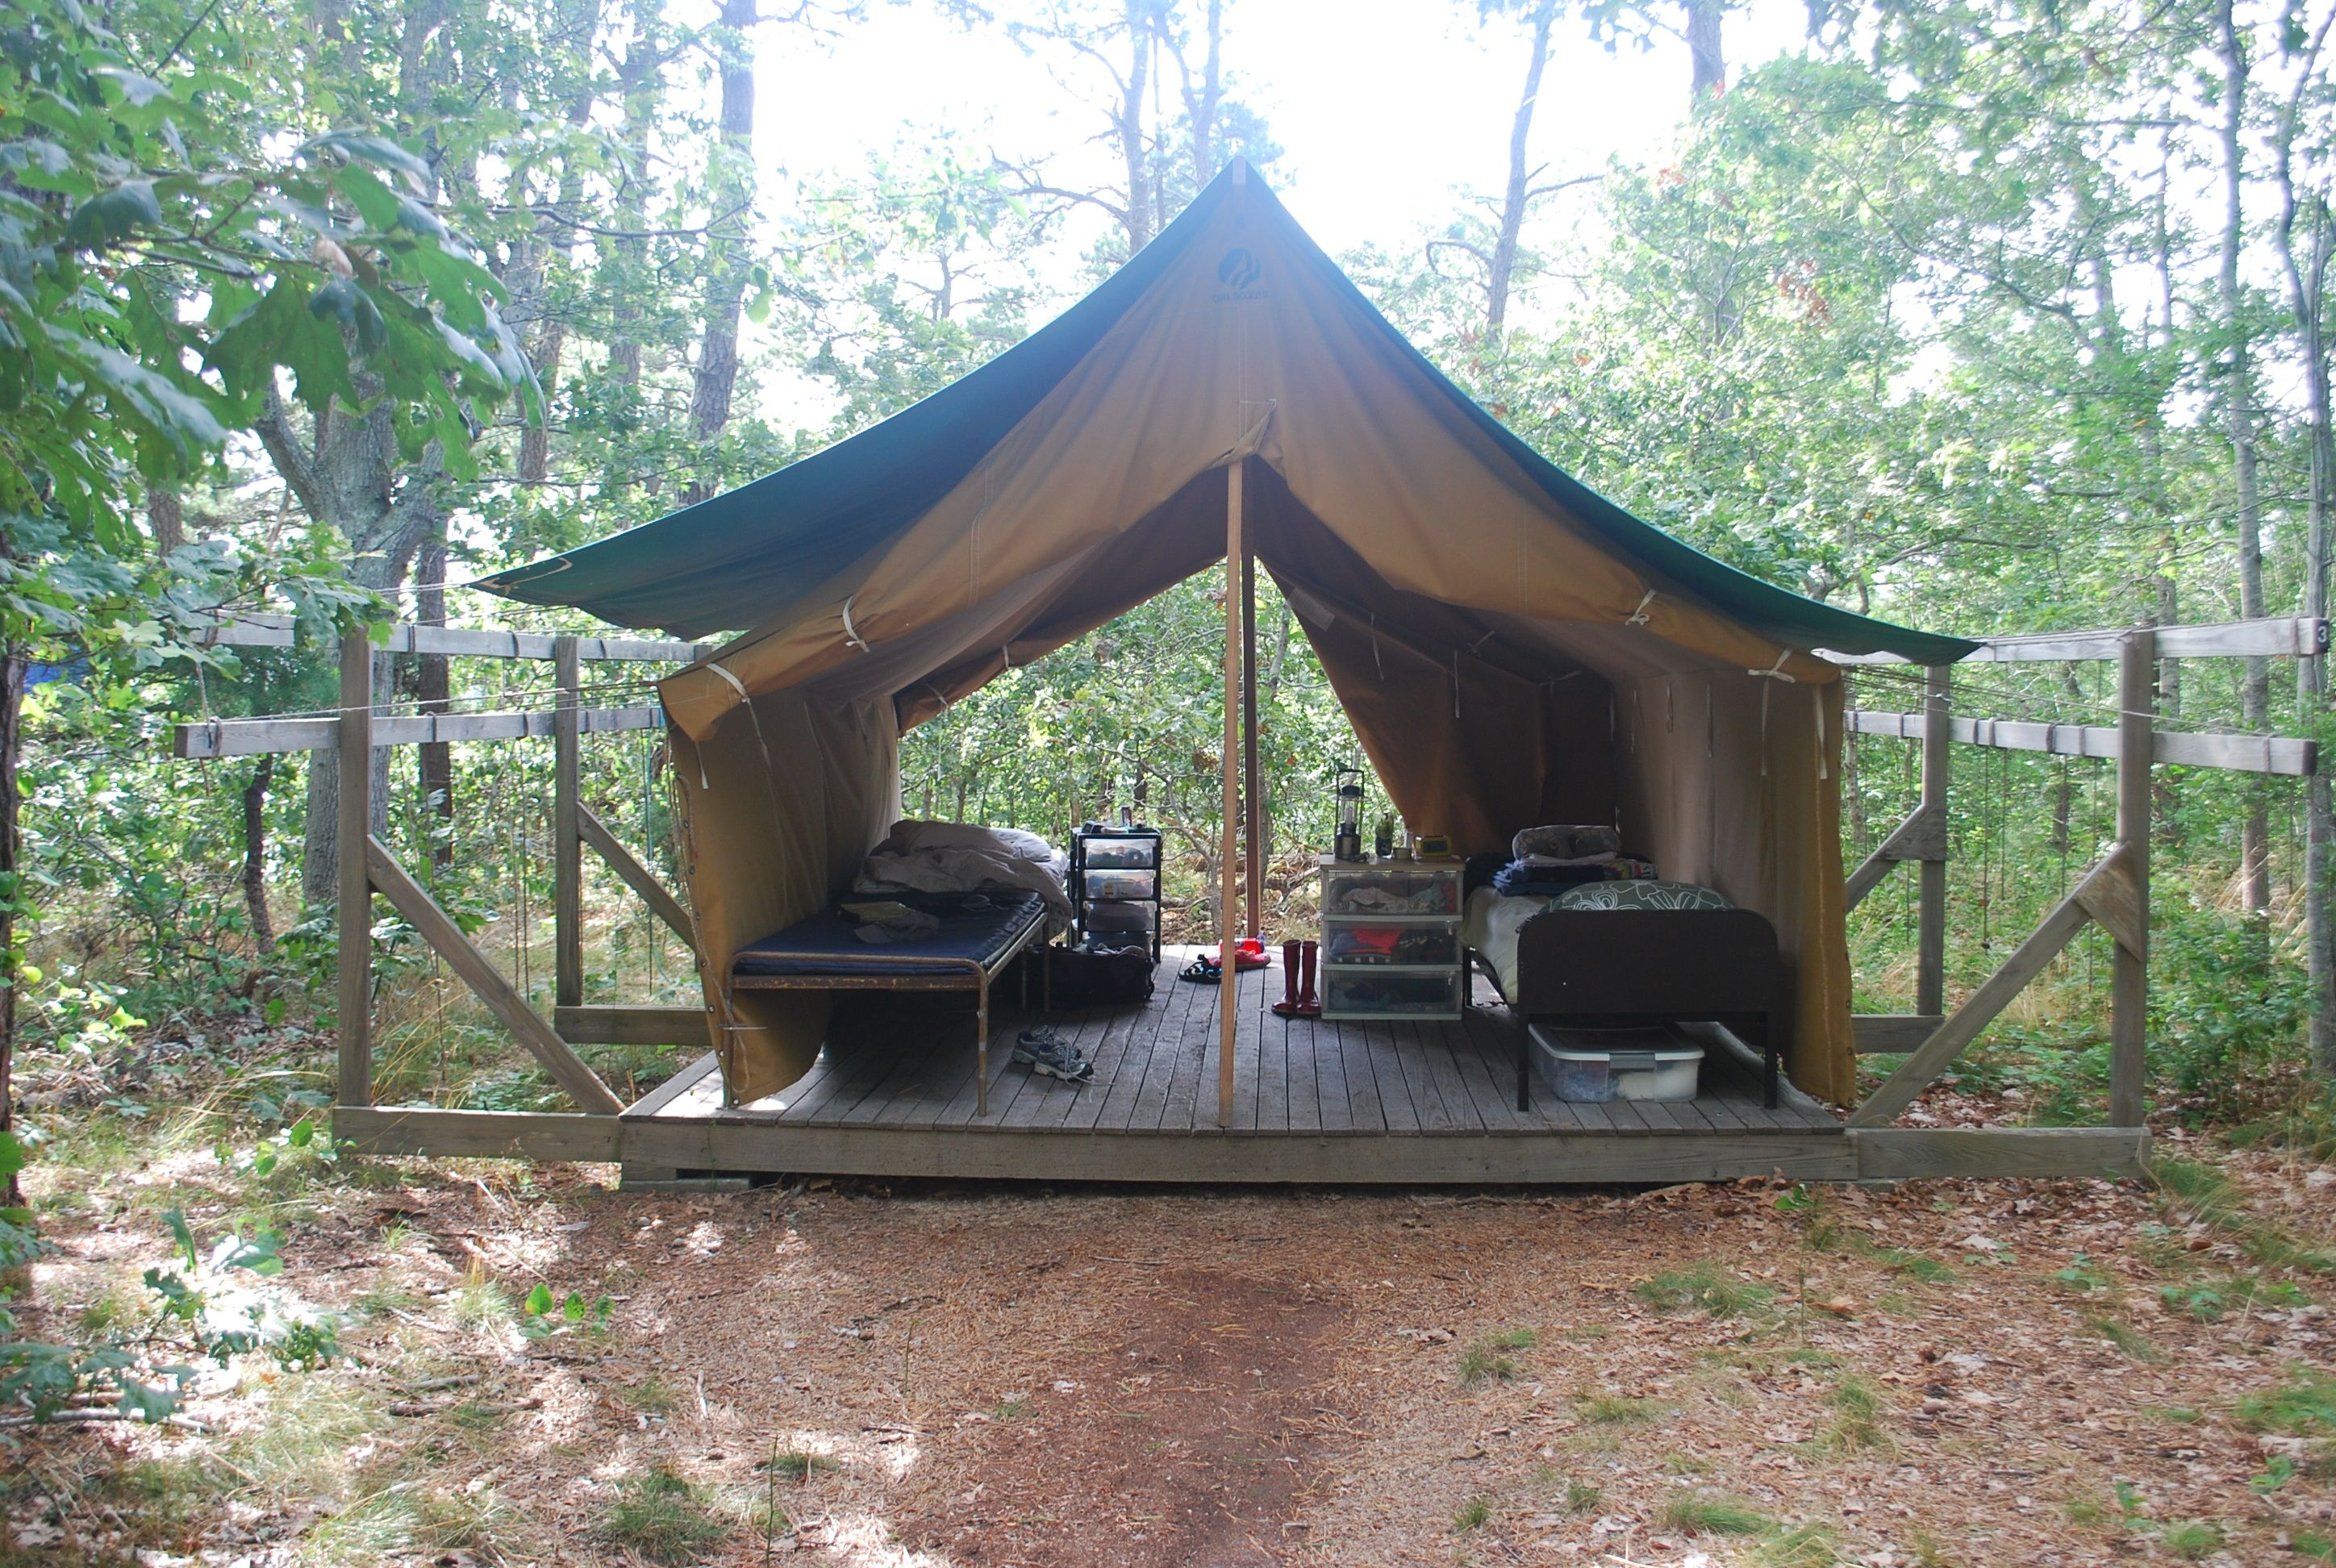 platform tents - Google Search · Girl ScoutsCanvas ... & platform tents - Google Search | Storytelling | Pinterest | Tents